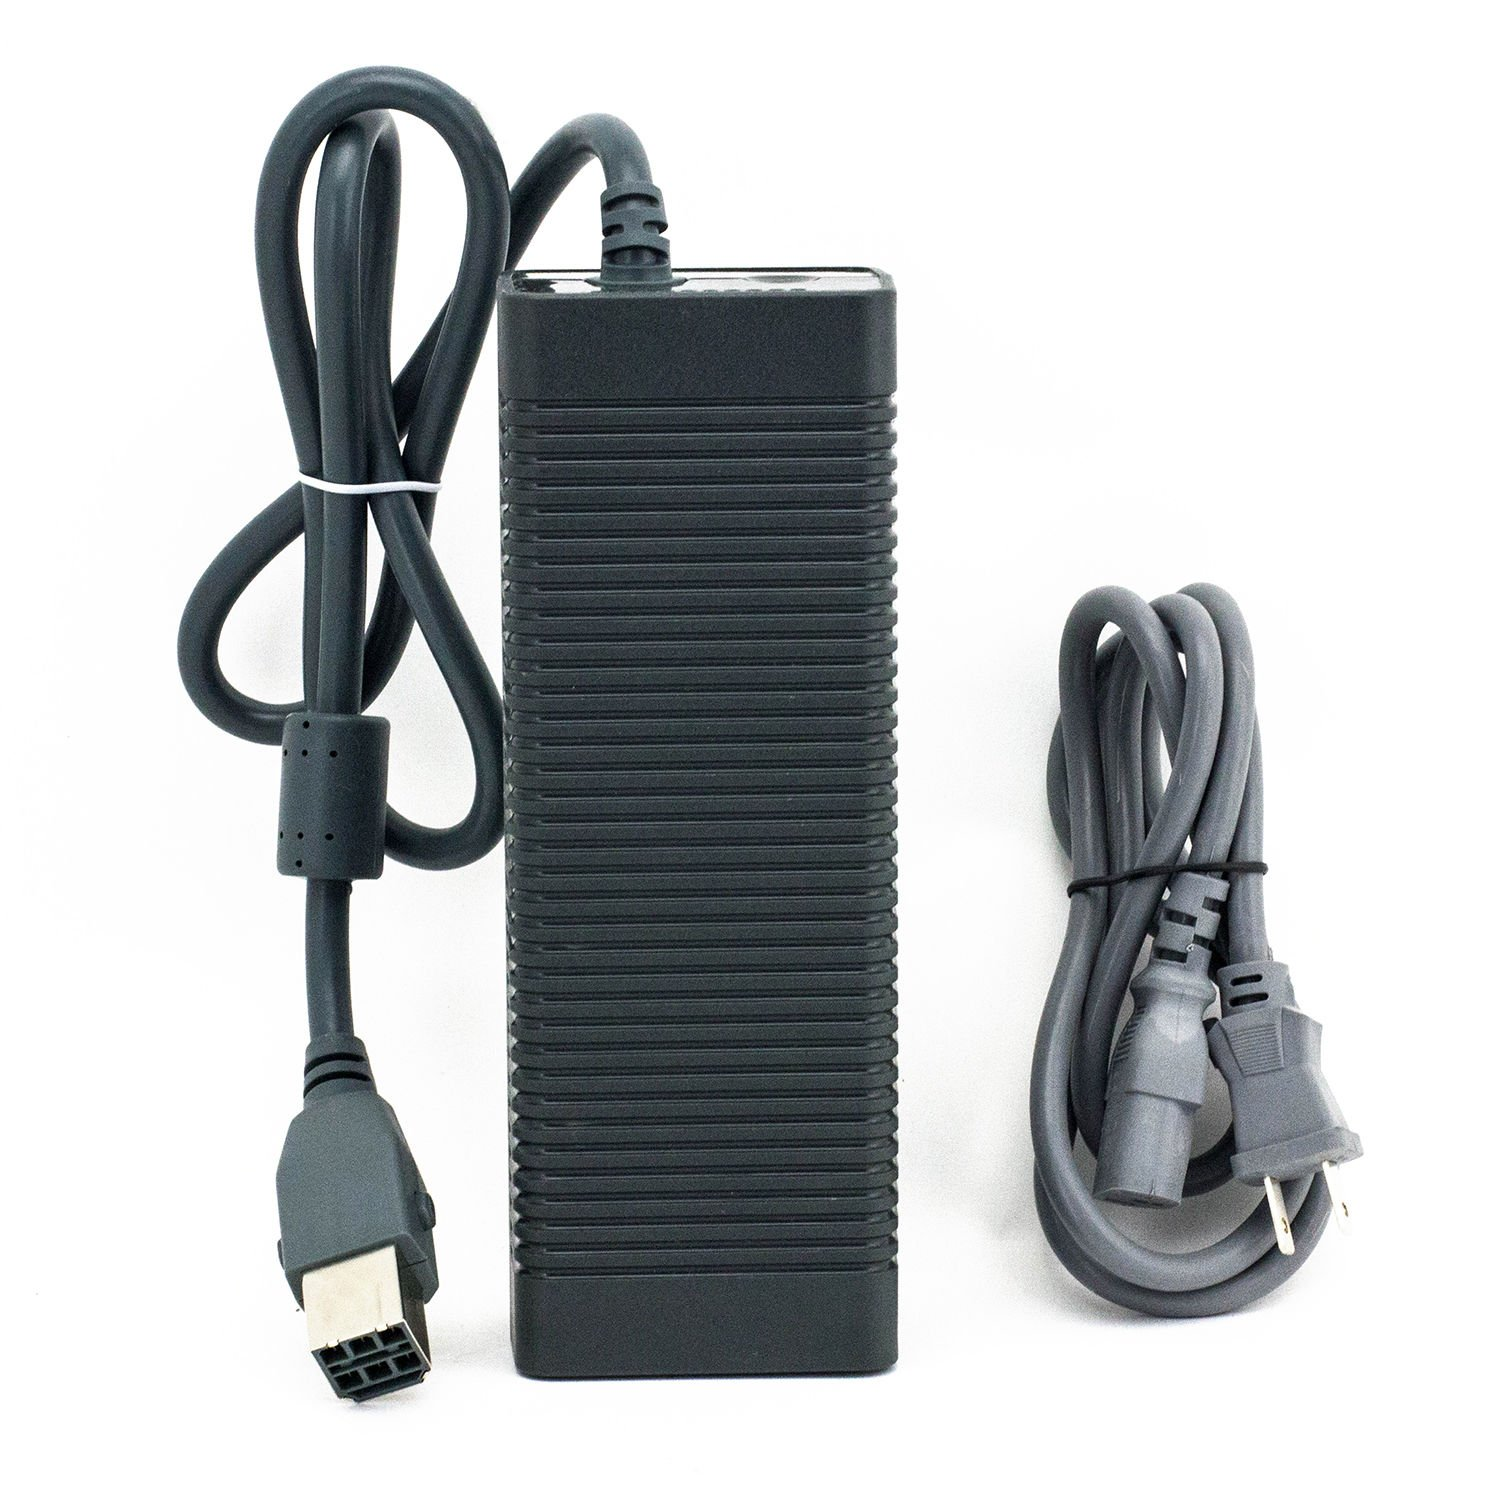 Commart Plug AC Adapter Power Supply Brick Cable For Microsoft Xbox 360 X-360 Console Shipping From US